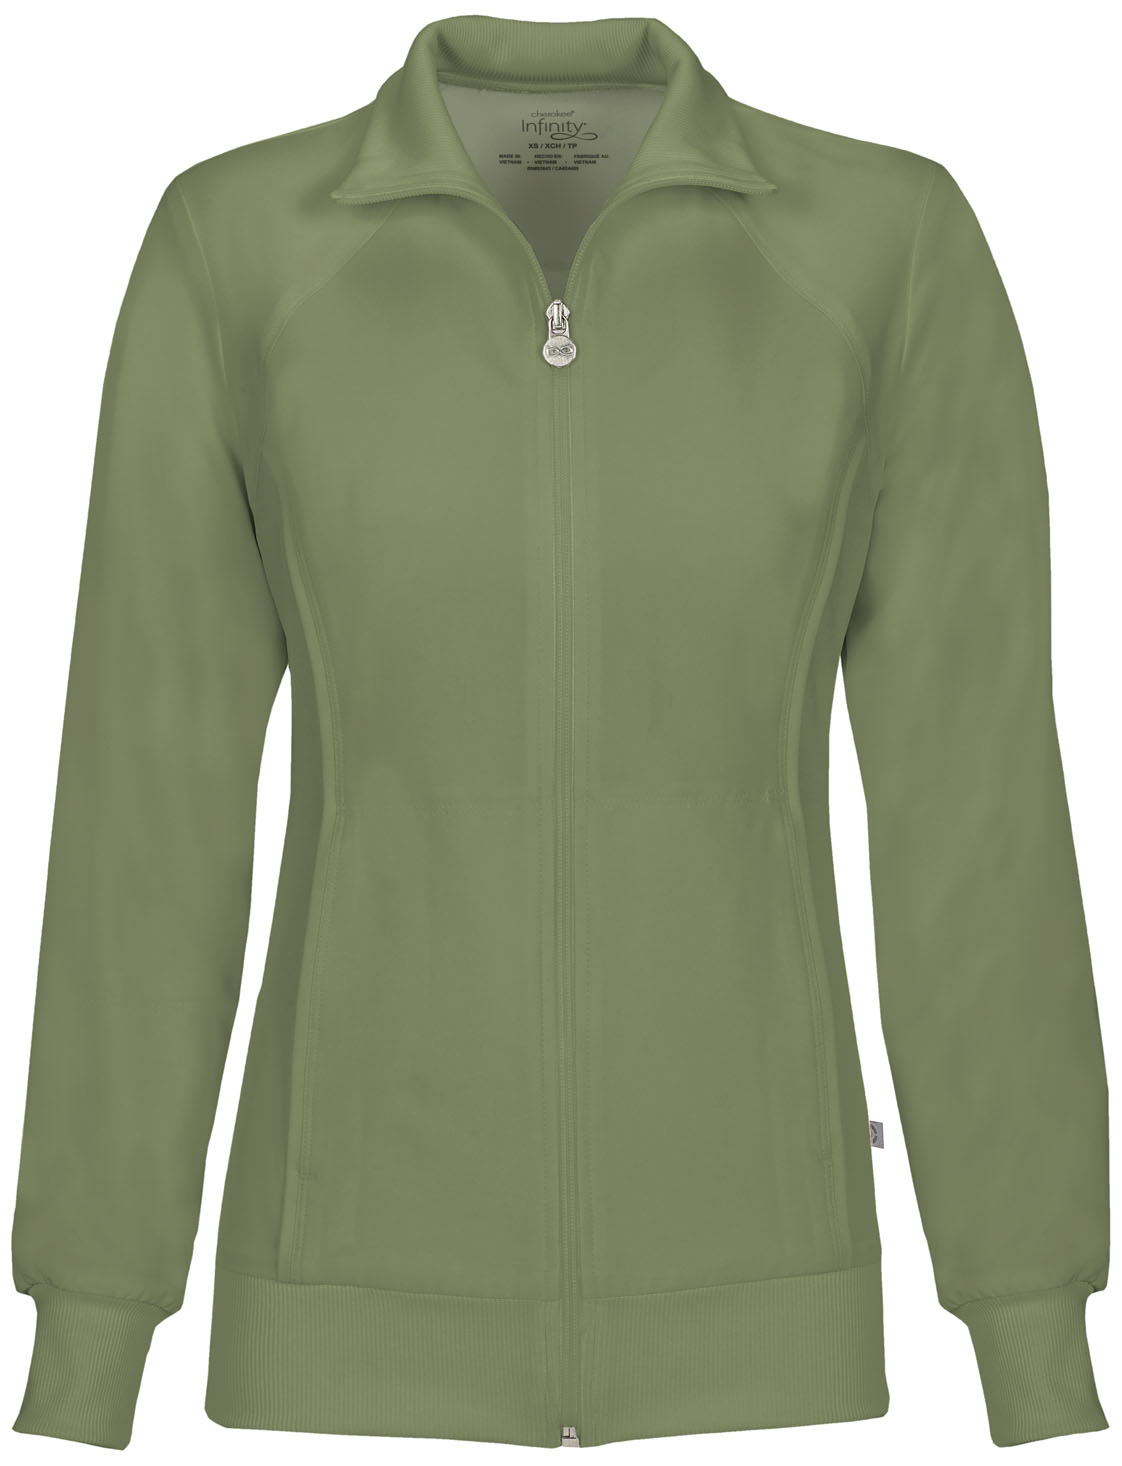 Cherokee Infinity Women's Zip Front Warm-Up Jacket - 2391A ...